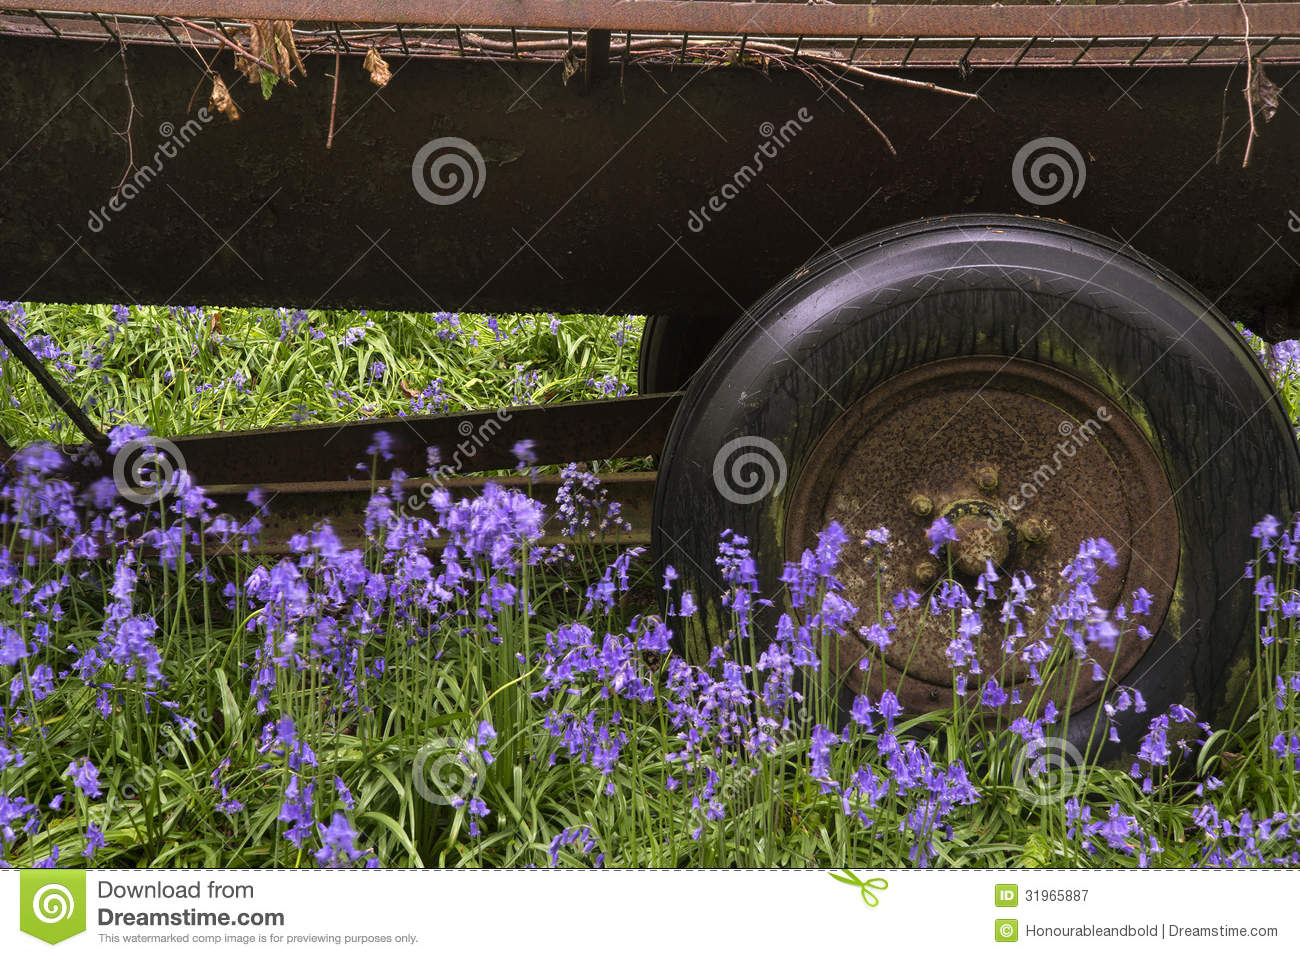 Download Old Farm Machinery In Vibrant Bluebell Forest Stock Image - Image of blue, colorful: 31965887